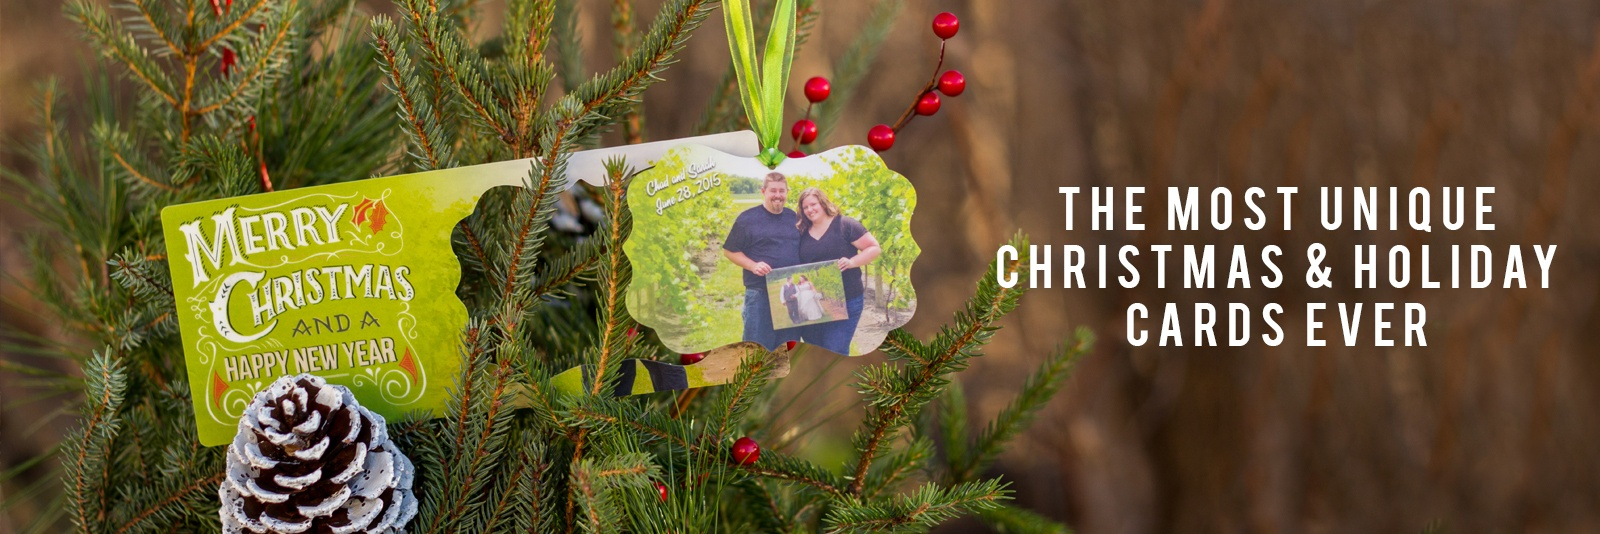 The Most Unique Christmas and Holiday Cards Ever